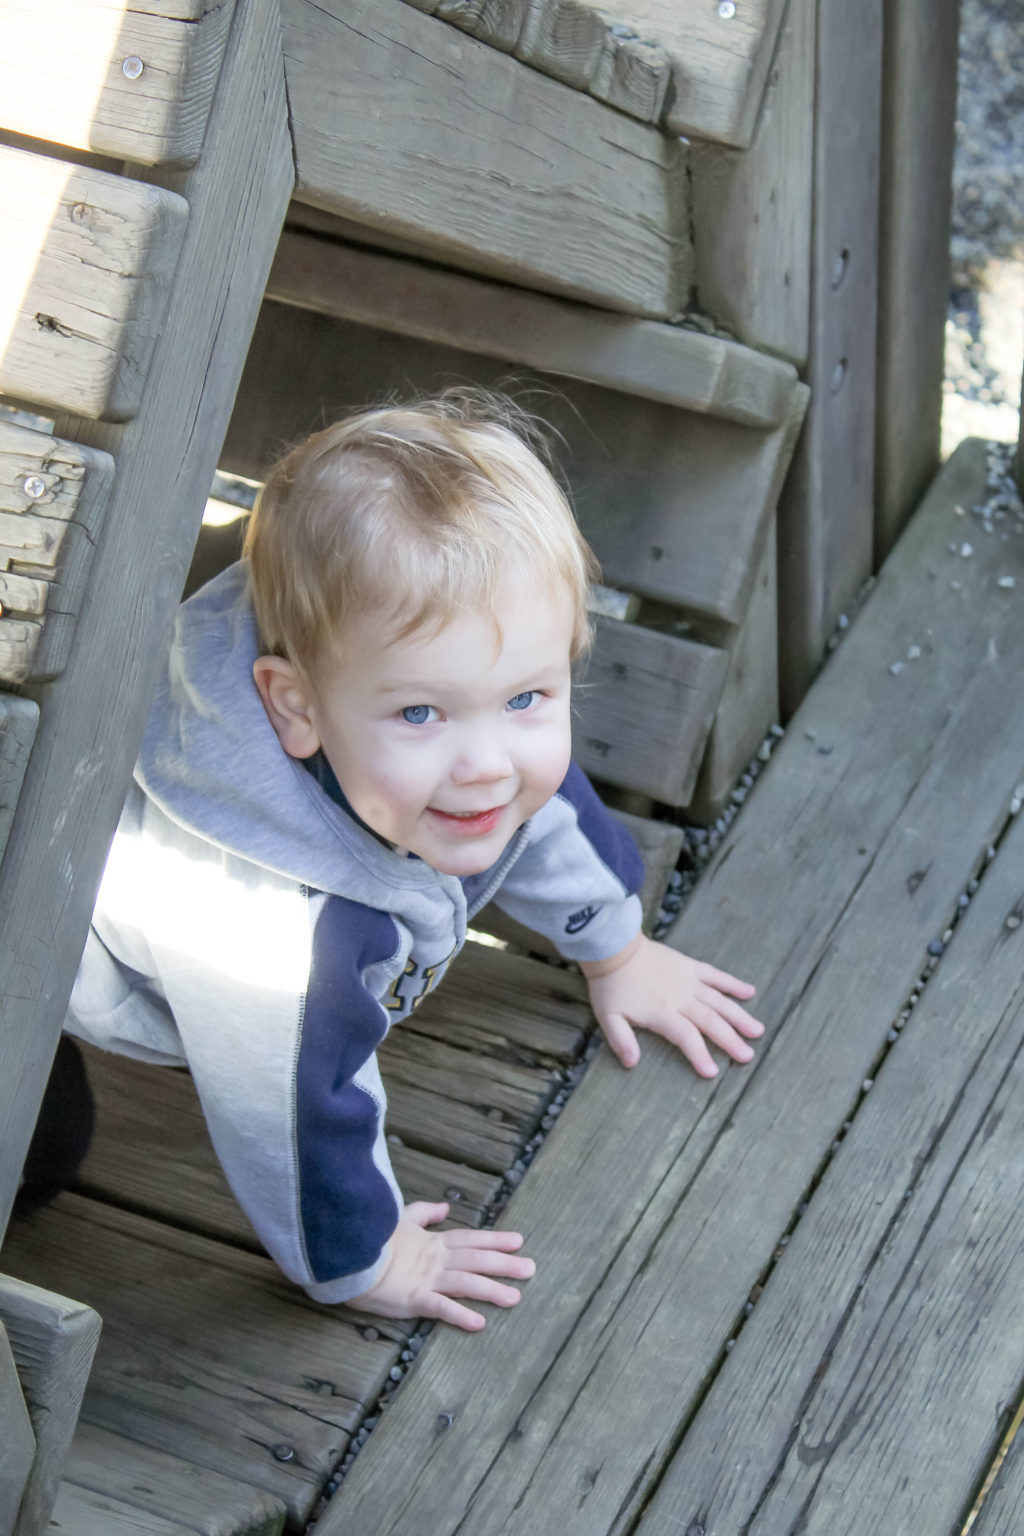 Are you dealing with the terrible twos? There's hope, mama!